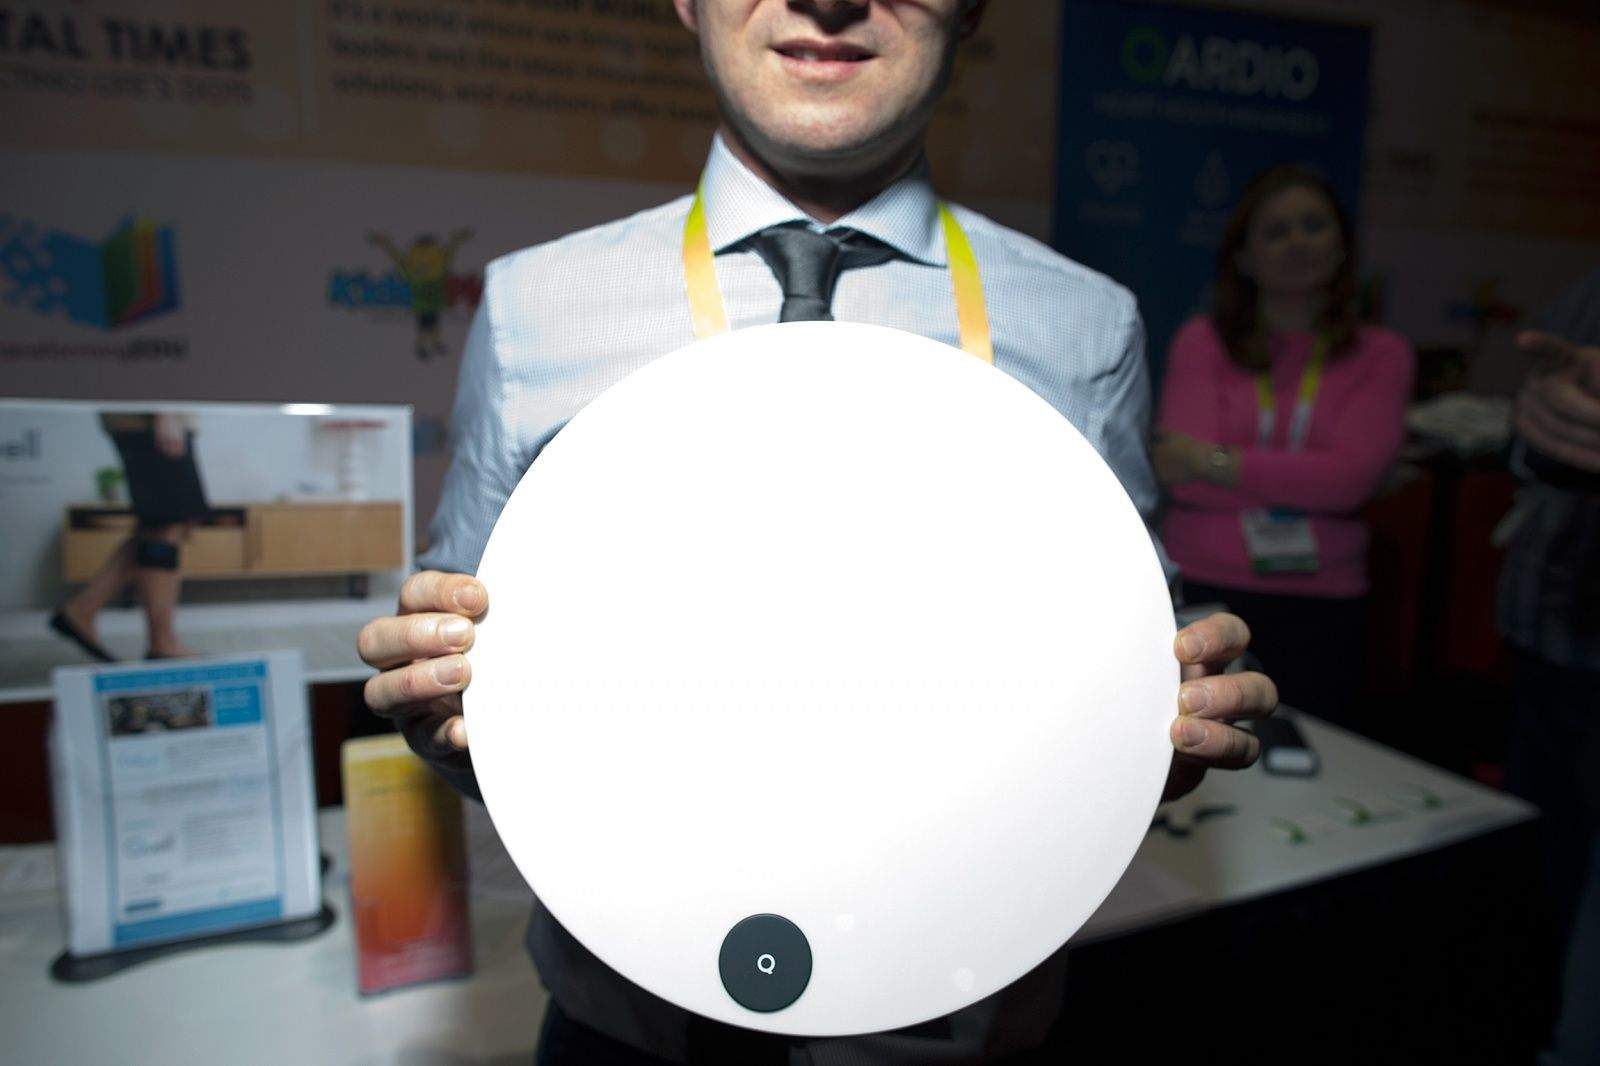 Qardio's new smart scale won't automatically frown if you overate last night. Photo: Jim Merithew/Cult of Mac